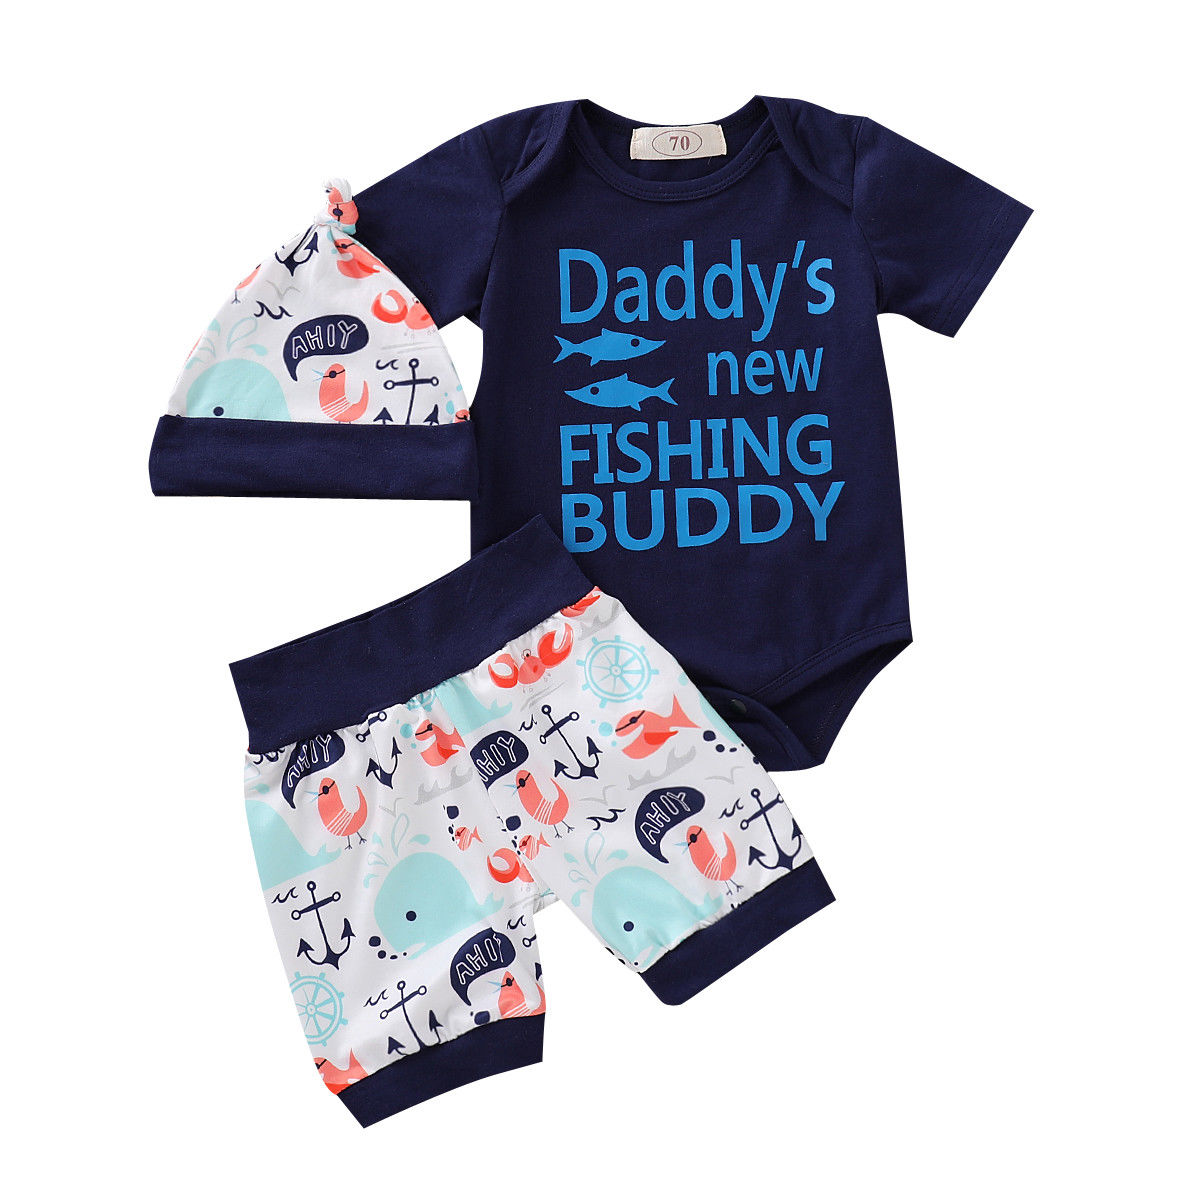 2019 Canis Summer 3pcs Newborn Infant Baby Boys Tops Fishing Short Sleeves Bodysuit Pants Shorts Hat Outfits Set Clothes A Great Variety Of Goods Boys' Baby Clothing